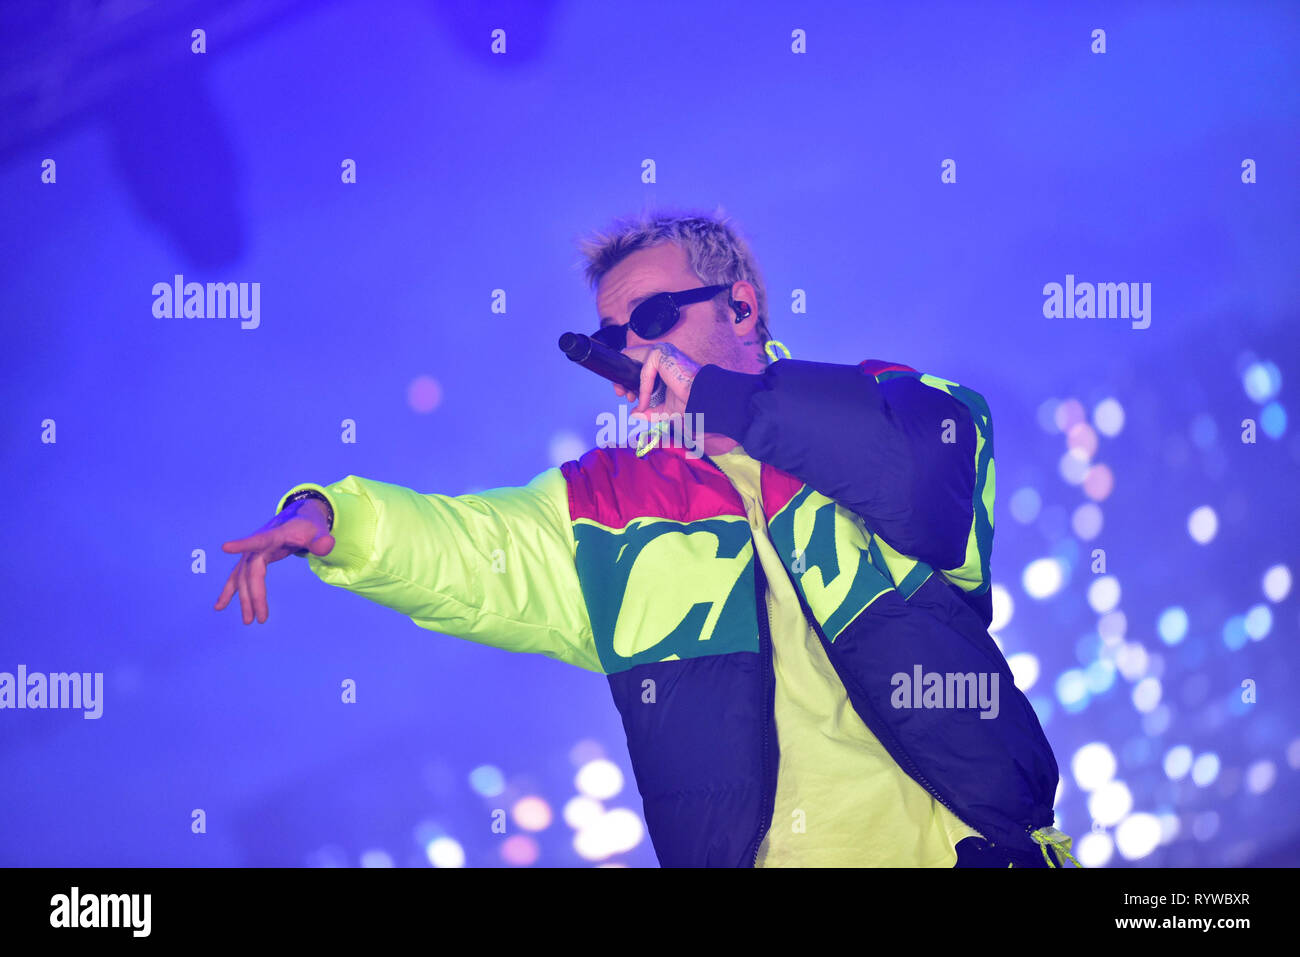 "Napoli, Italy. 14th Mar, 2019. The Italian rapper Maurizio Pisciottu aka Salmo performing live on stage for his ""Playlist"" tour concert in Napoli at the Palapartenope in front a sold out venue. Credit: Paola Visone/Pacific Press/Alamy Live News Stock Photo"